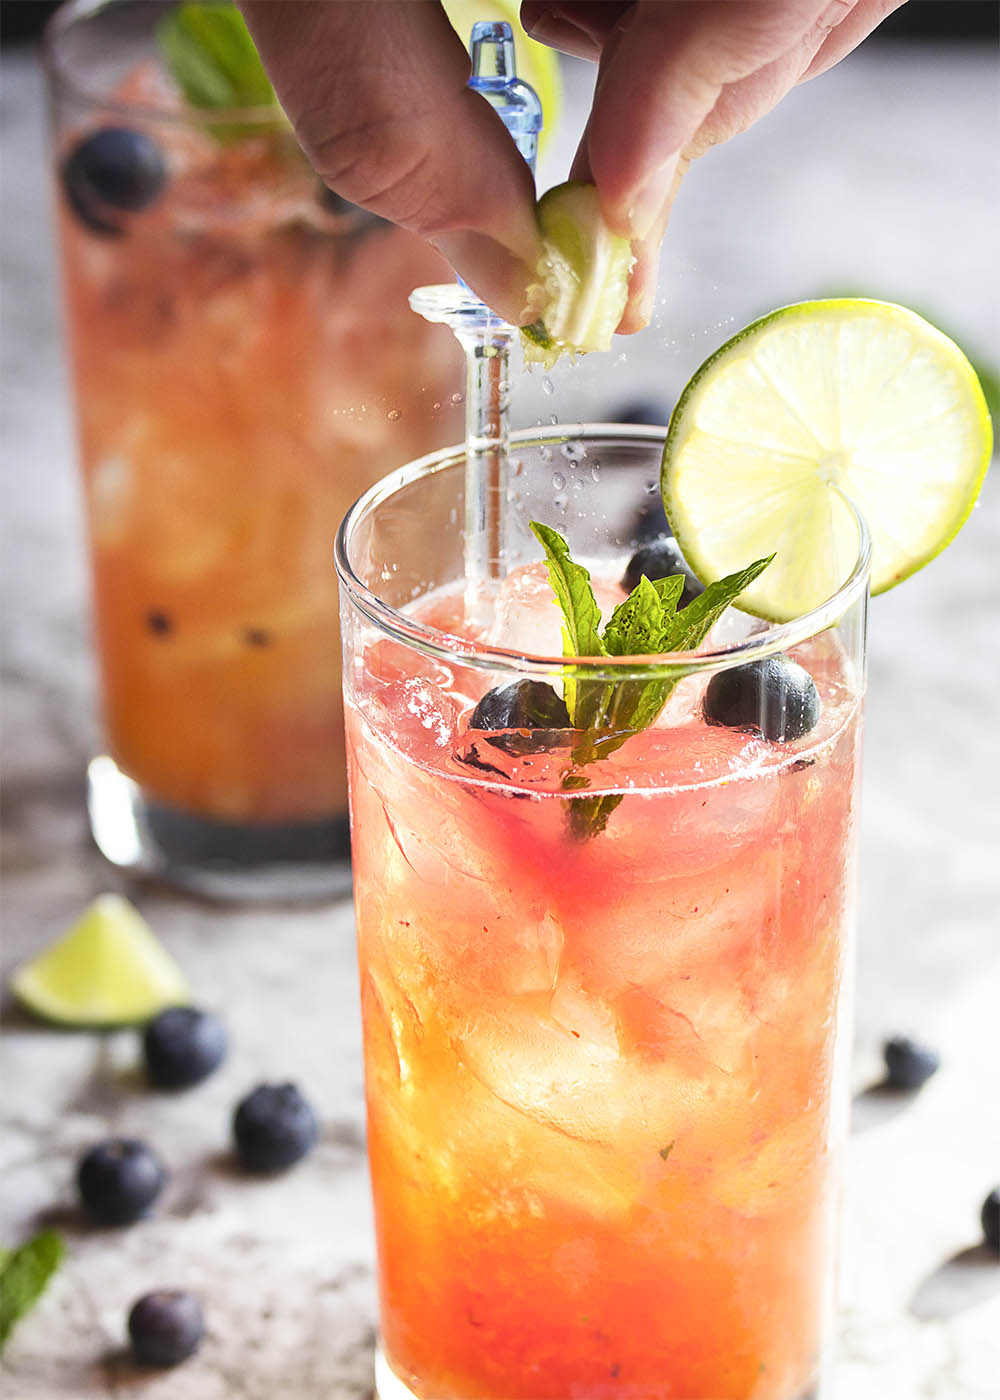 Fresh Blueberry Mojito - This blueberry mojito is full of fresh blueberry and mint flavor, and is an easy and refreshing summer drink perfect for sipping out of a straw. Great for cookouts or a warm evening on your deck!   justalittlebitofbacon.com